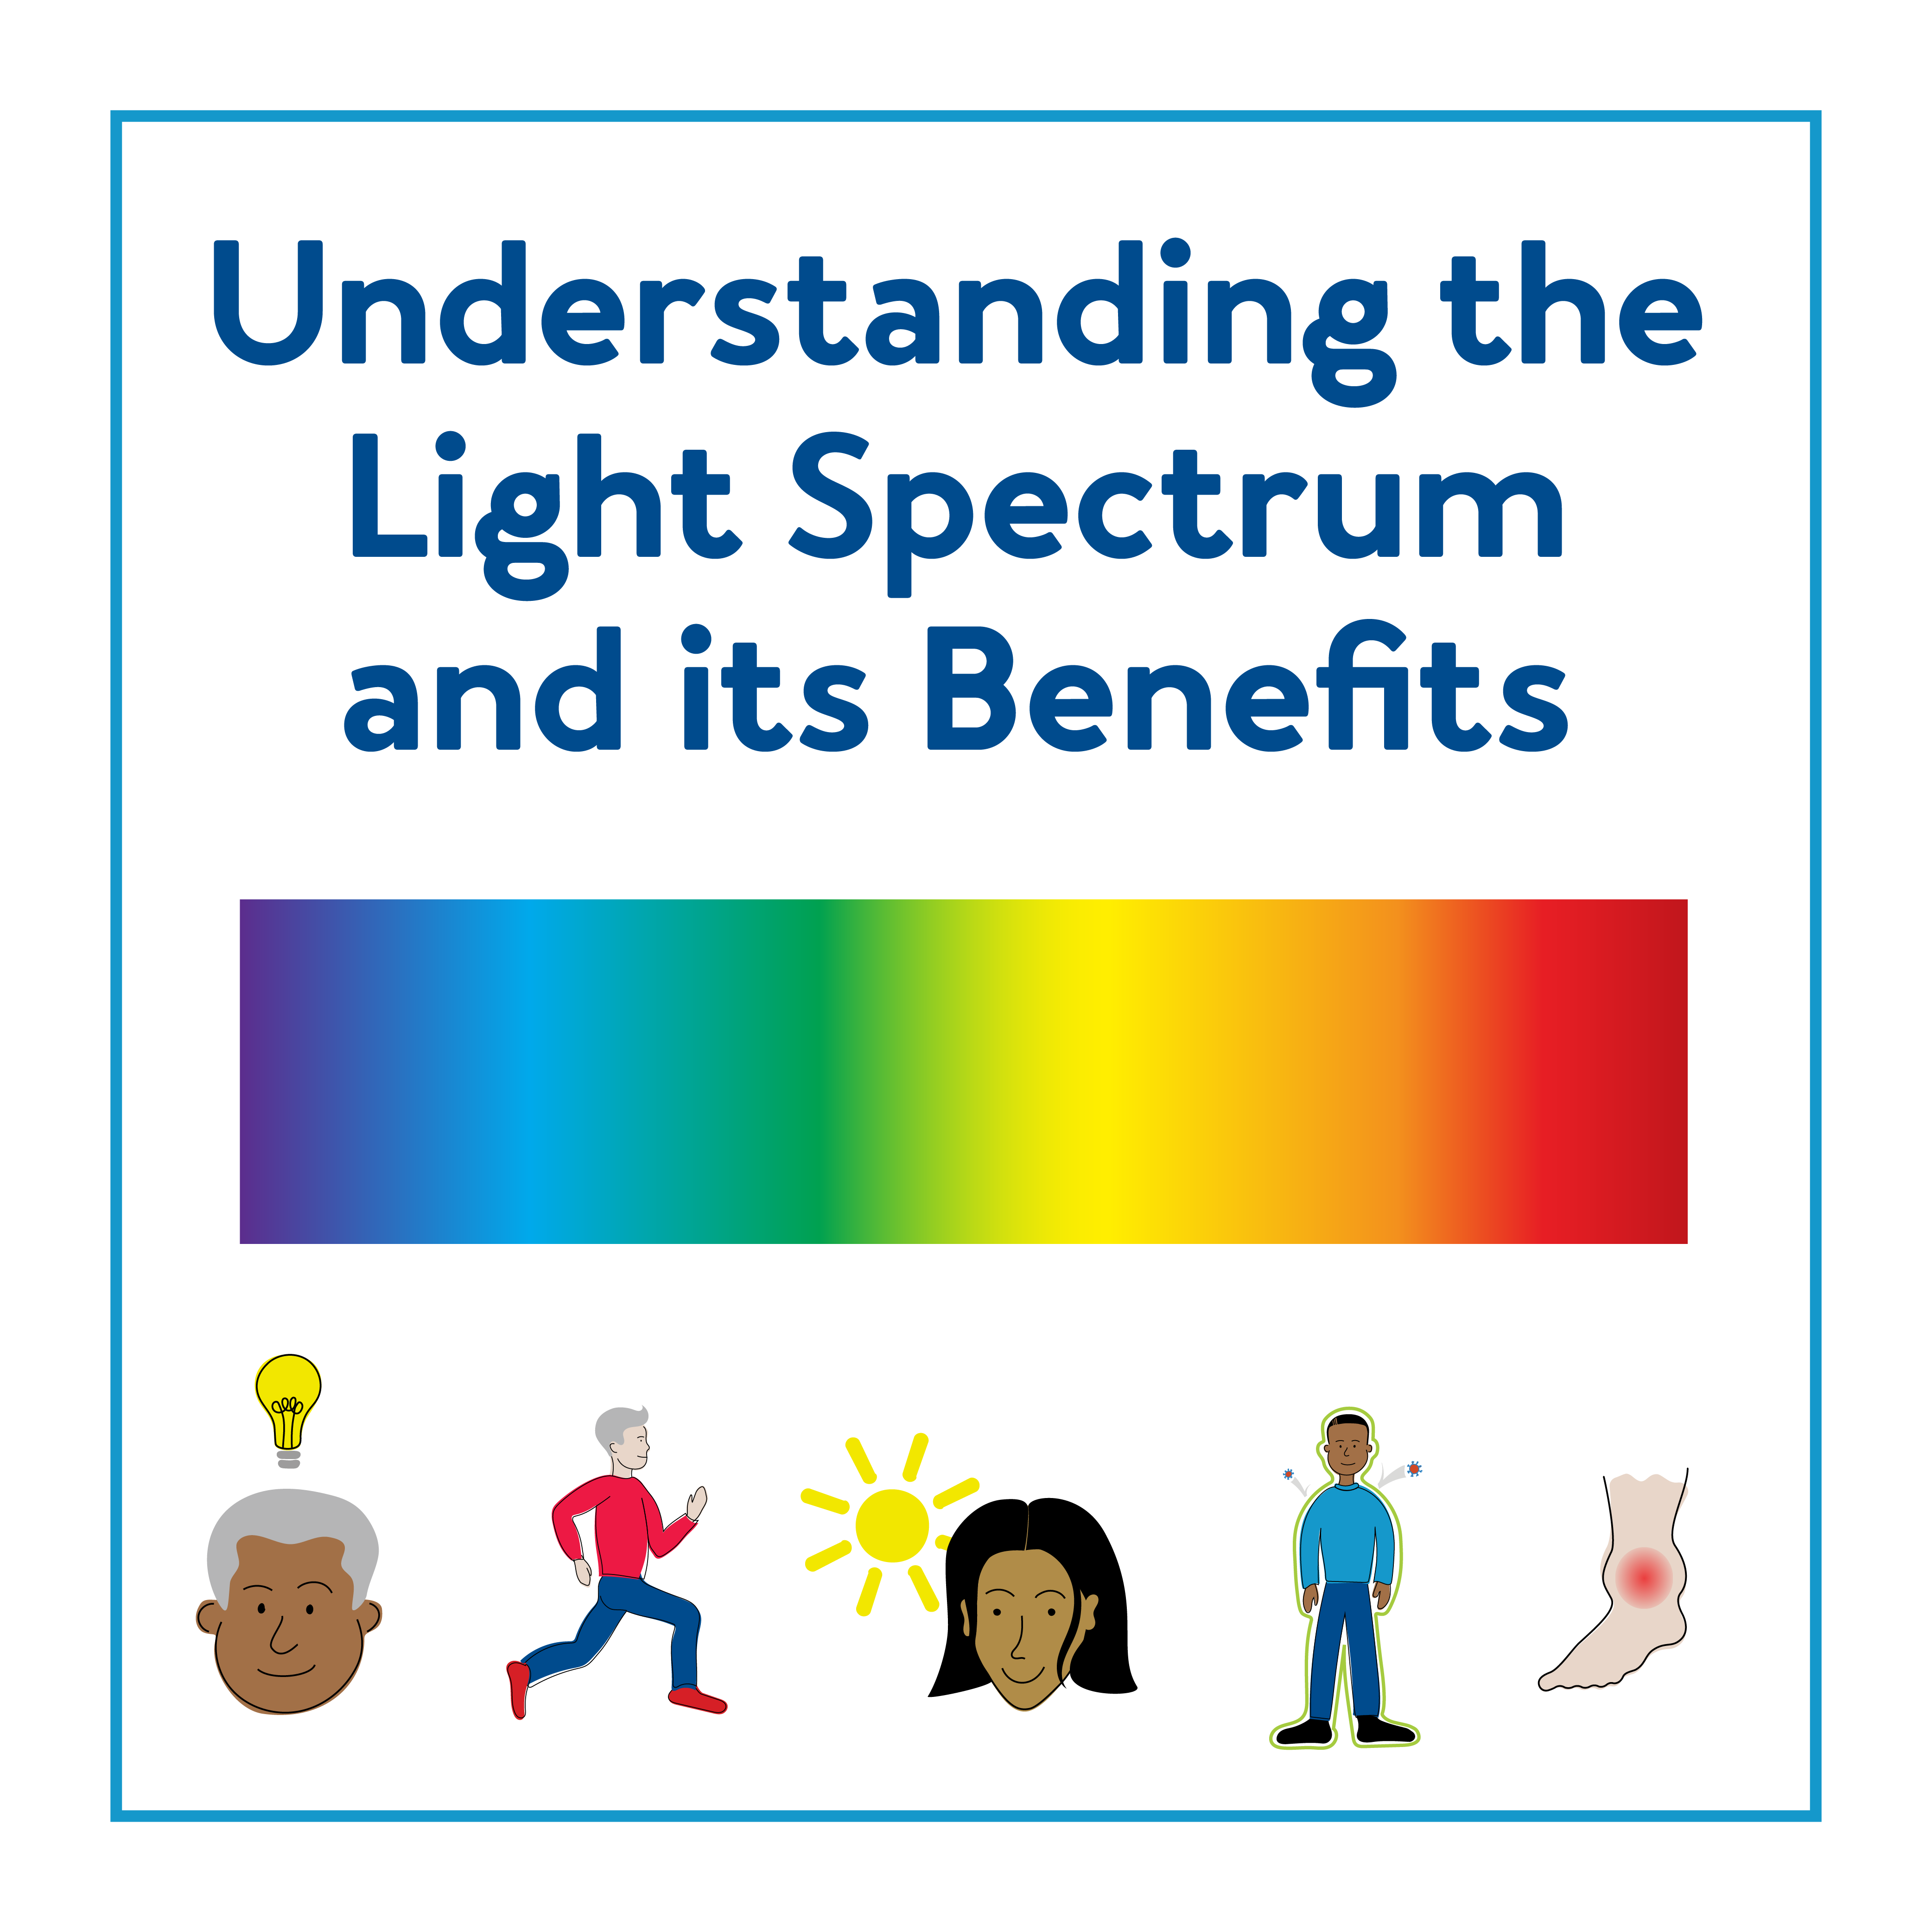 Understanding the Light Spectrum and its Benefits